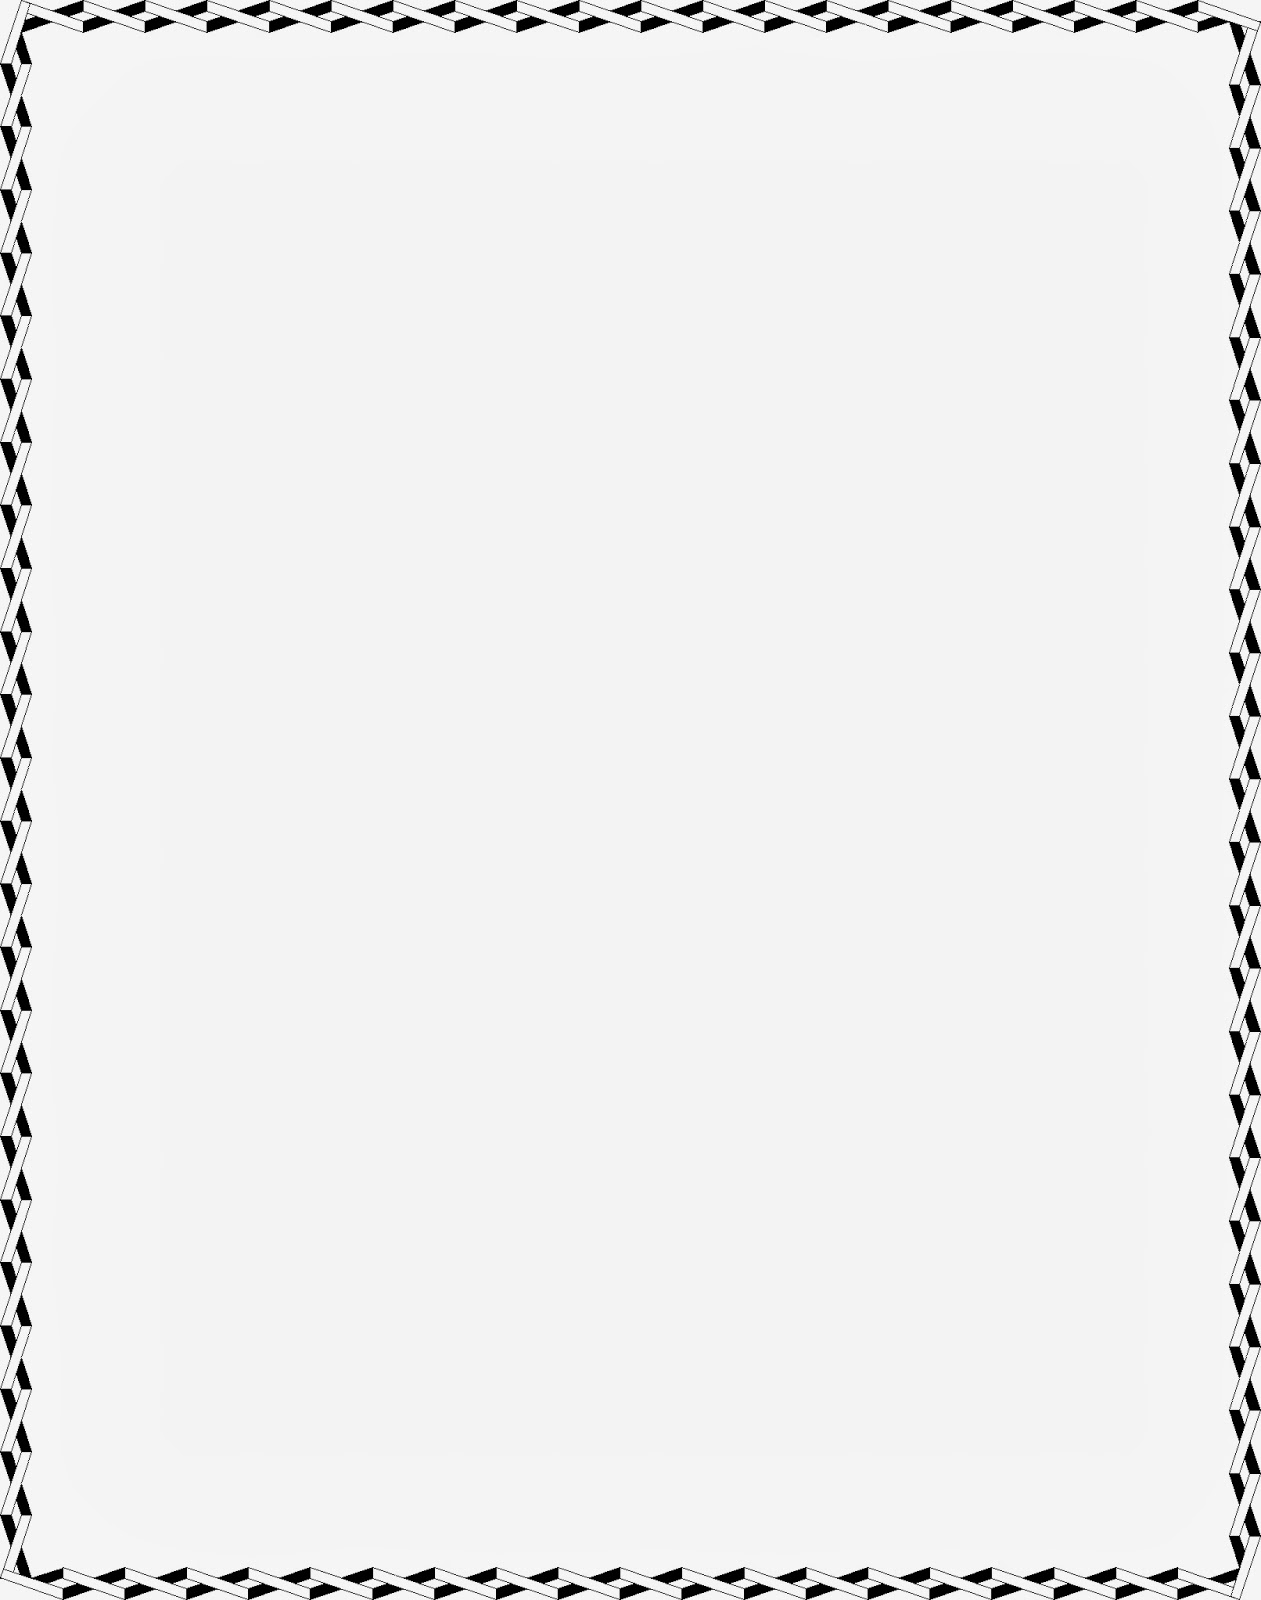 Line Art Borders : Best collection store page border line art black white